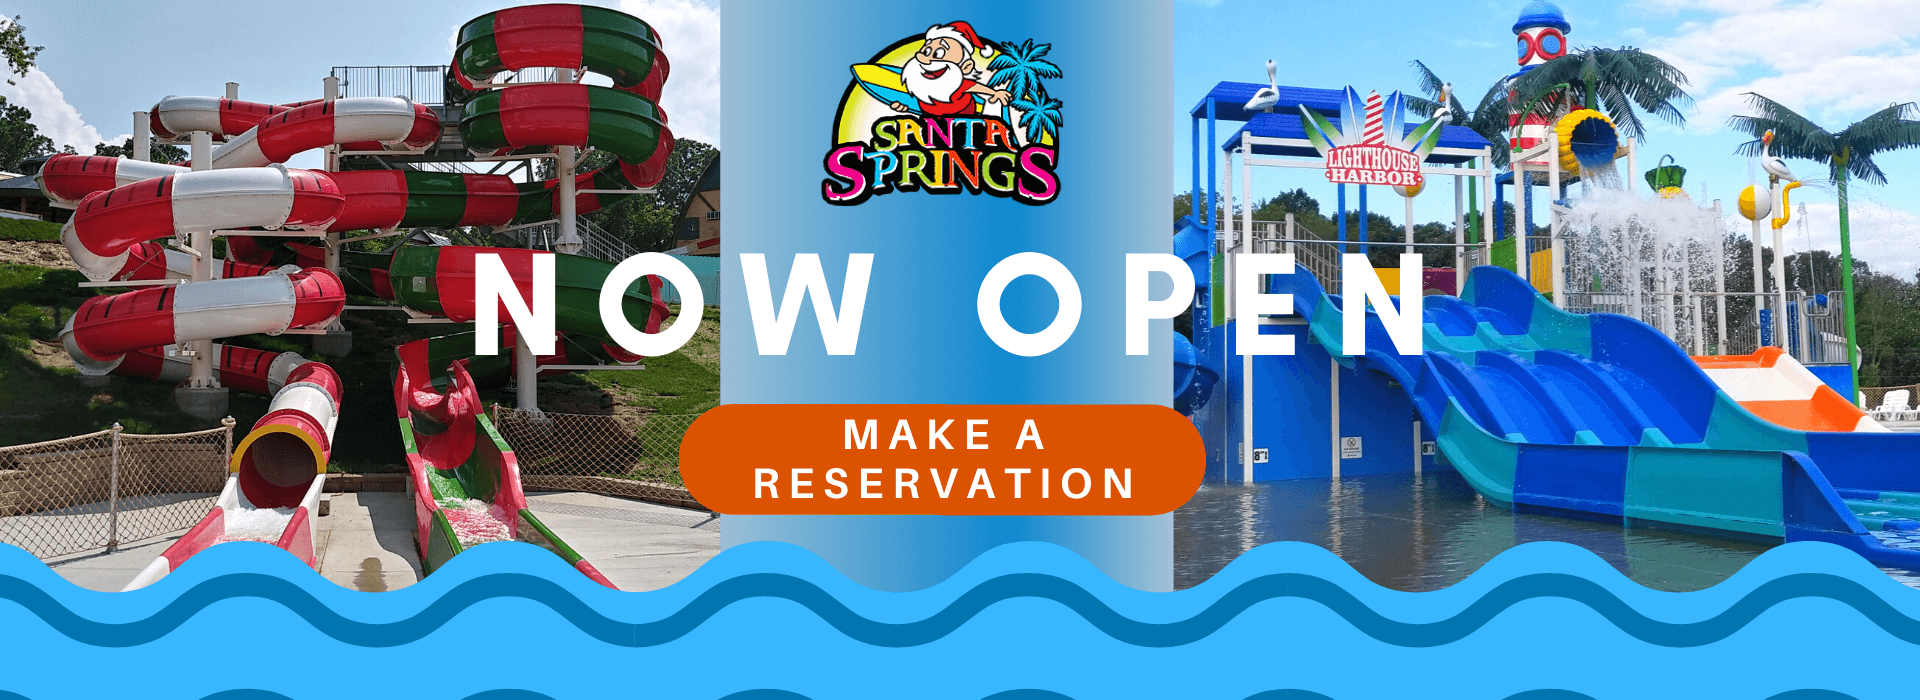 Santa Springs - Now Open - Make a Reservation